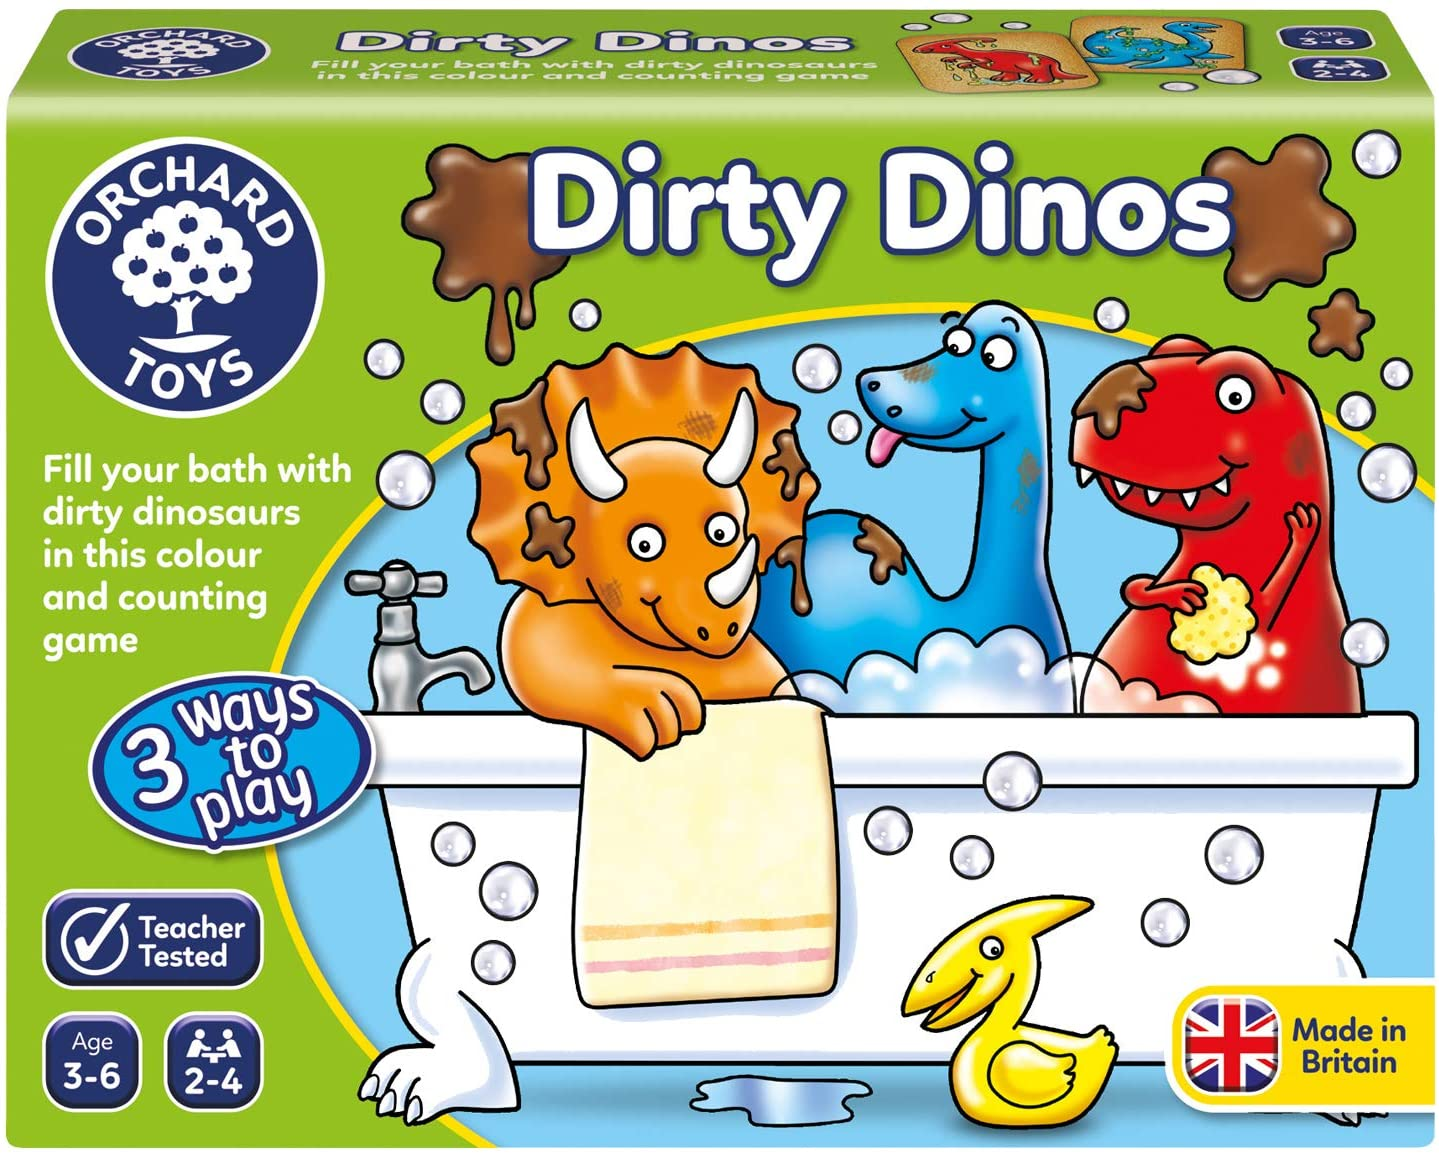 Dirty Dinos by Orchard Toys 3 ~ 6